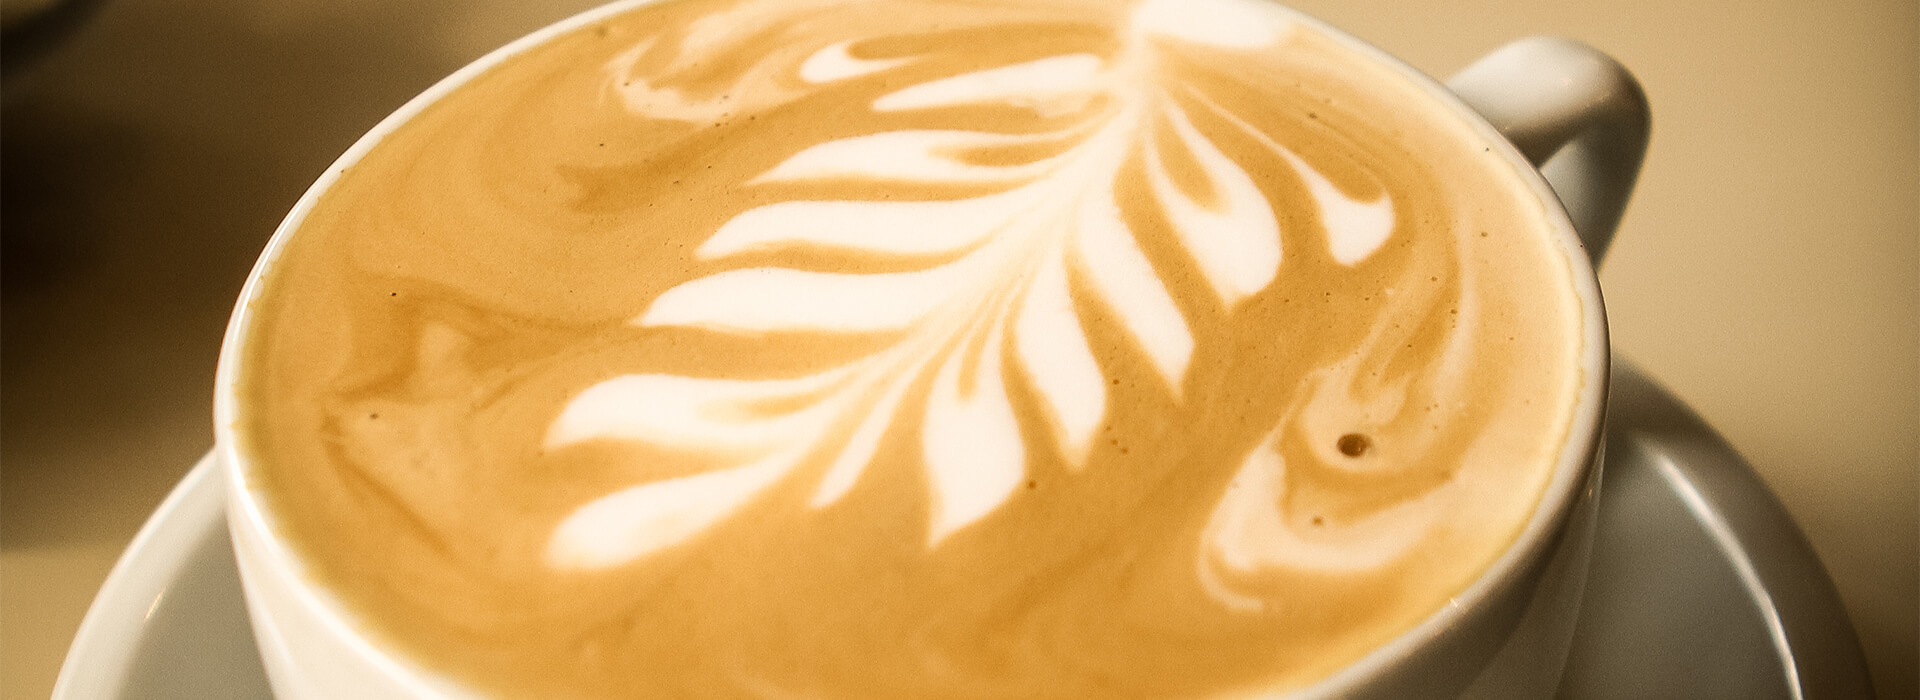 A beautifully decorated cup of coffee with a foam leaf.